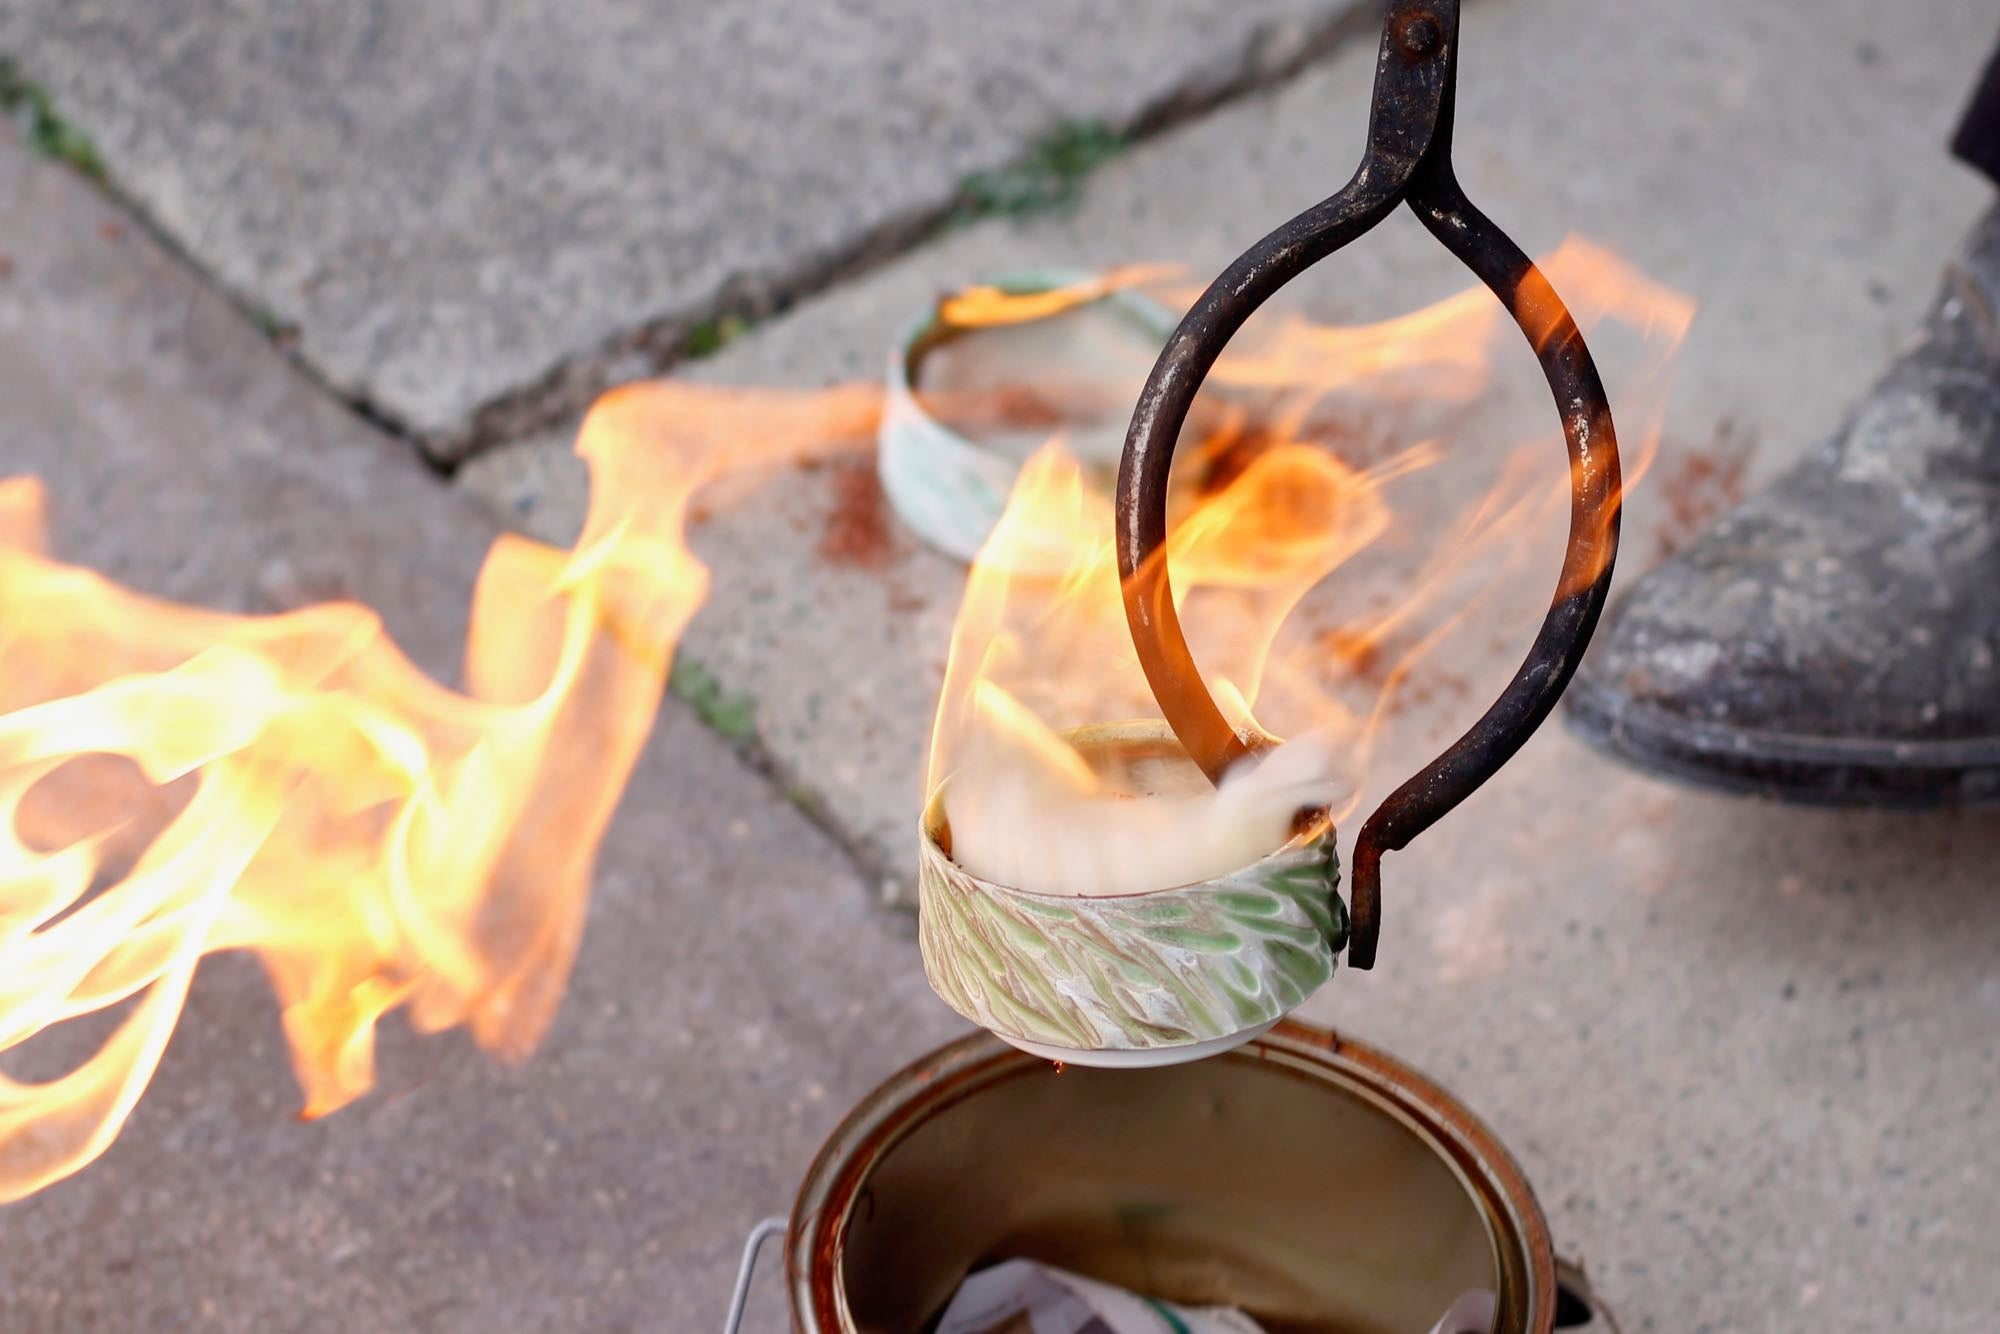 The magic of Raku firing